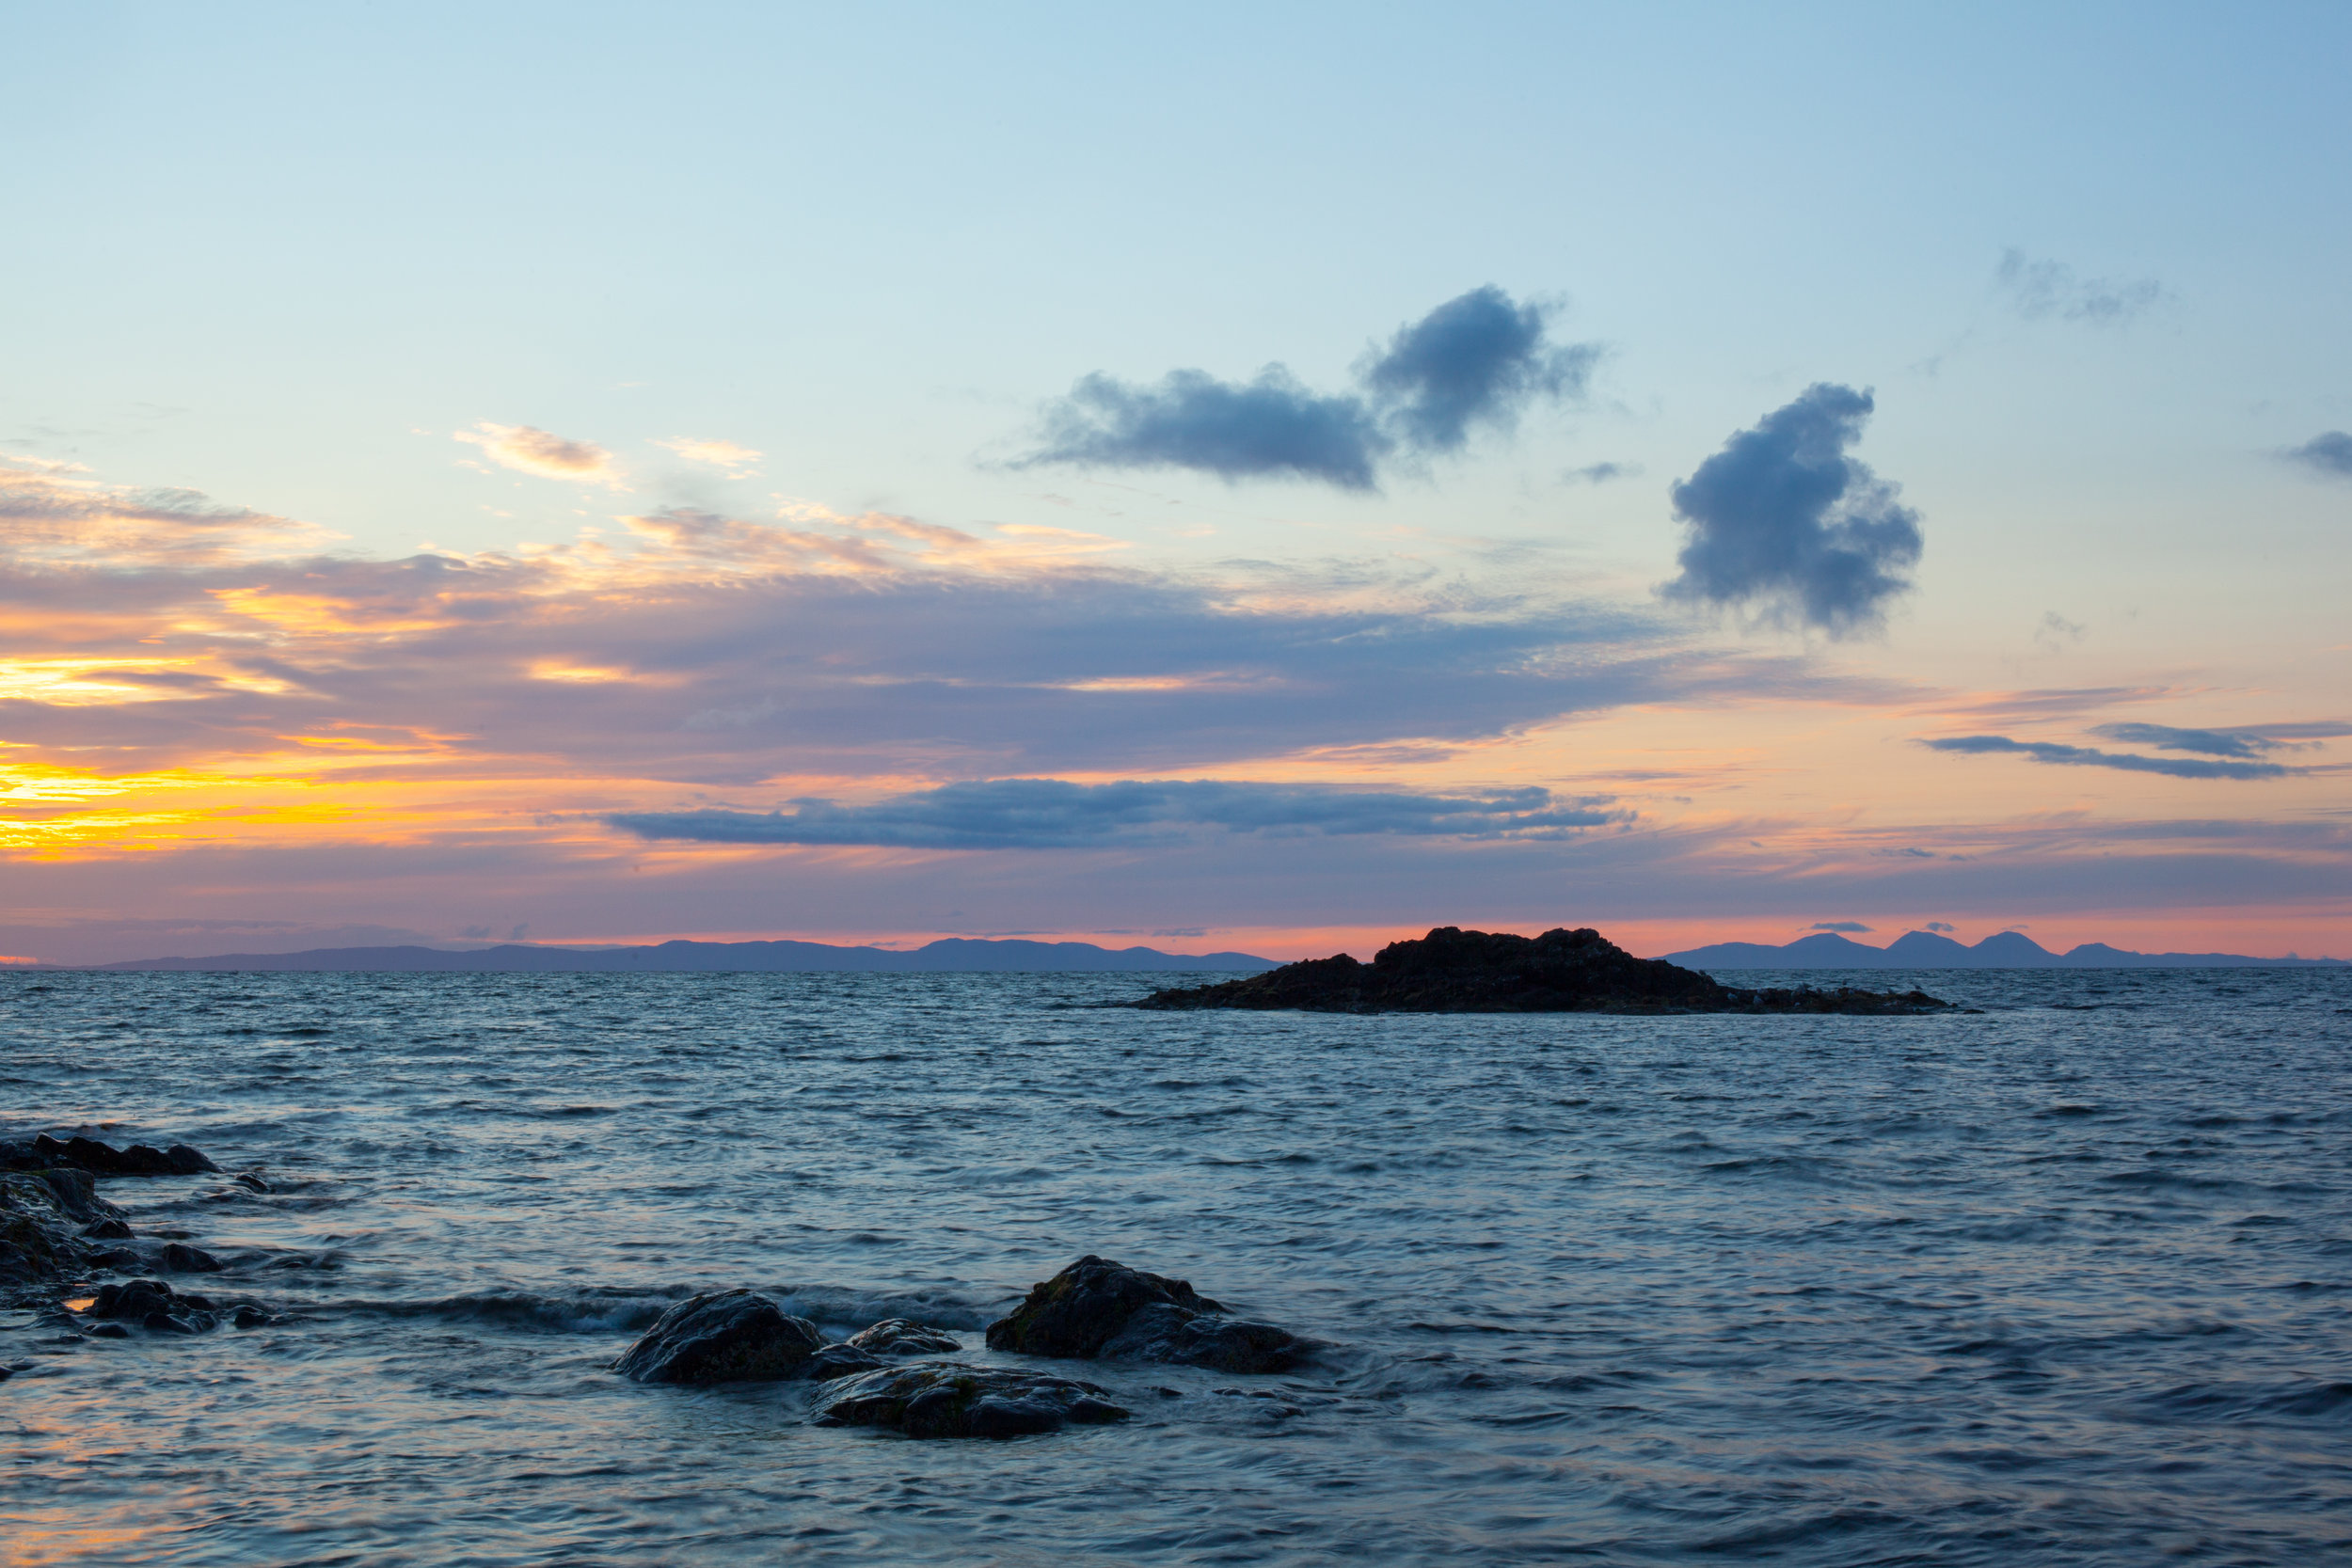 The coastline west of Campbeltown, Scotland during sunset.